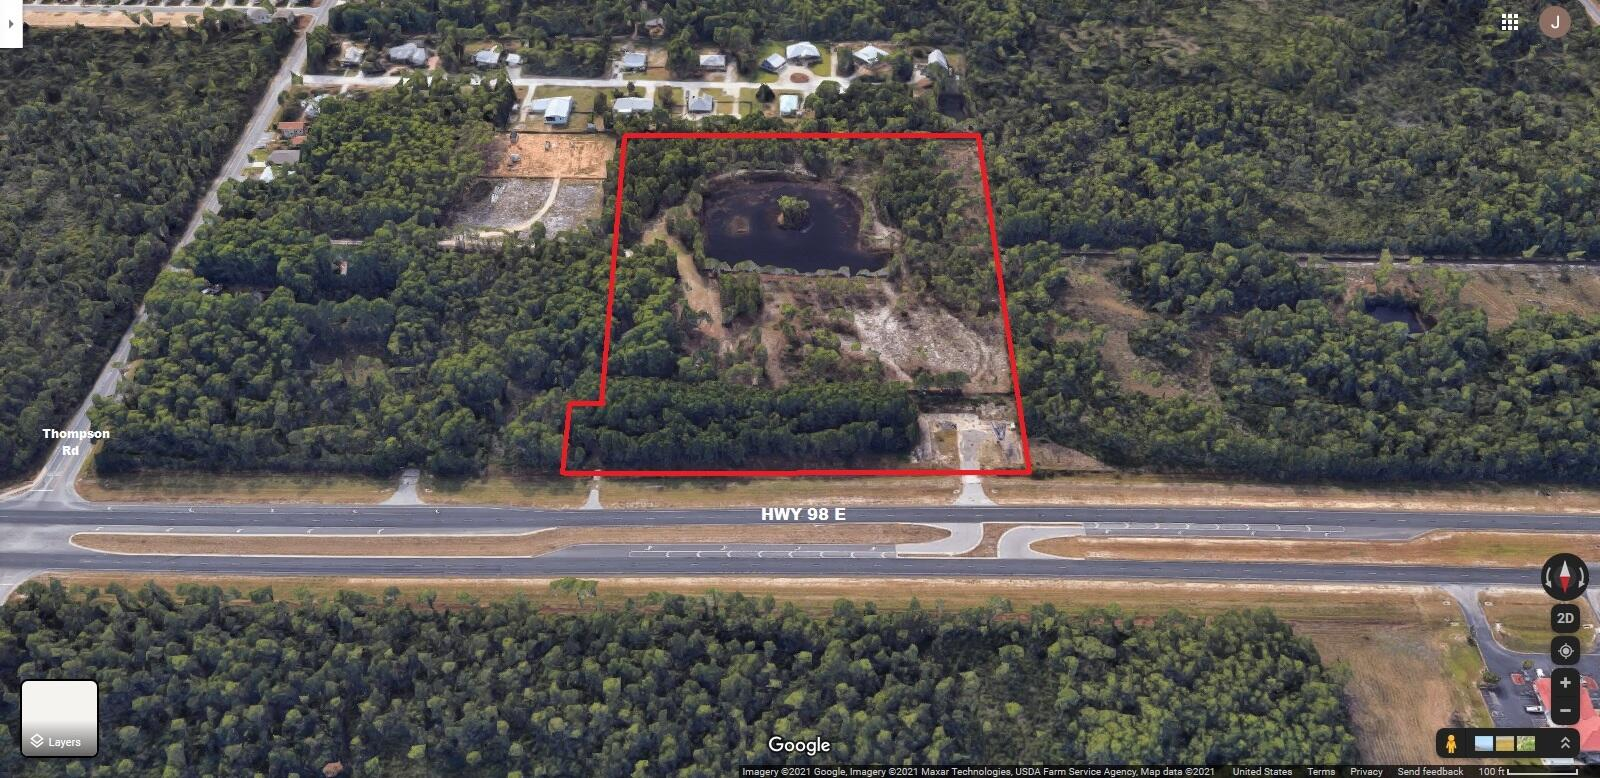 Fantastic development assemblage of four parcels in the booming Santa Rosa Beach area. Located along Hwy 98 E with 750 feet of frontage and 780 feet deep.. Just minutes from the sugar-white beaches of 30A, it is centrally located between Destin to the west and Panama City Beach to the east. with world-class shopping, fishing, recreation, dining and entertainment nearby in all directions. Zoned VMU which allows for a mixture of commercial and residential uses. All measurements and information are approximations based on available data and to be verified by buyer as to suitability for intended use.